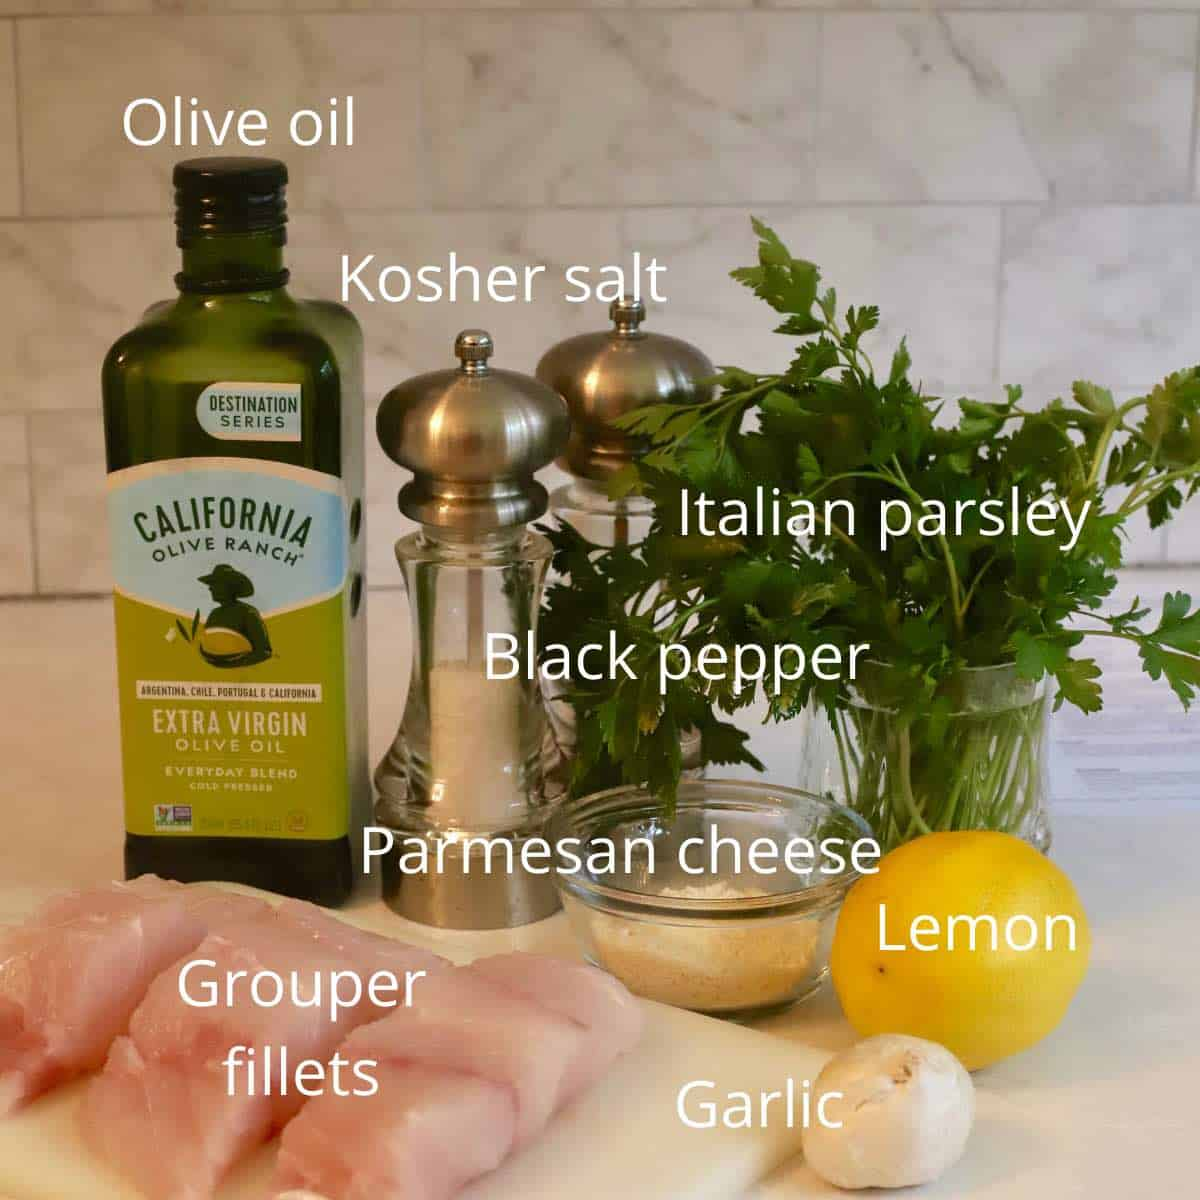 Ingredients like fish fillets, lemon and parsley on a cutting board.